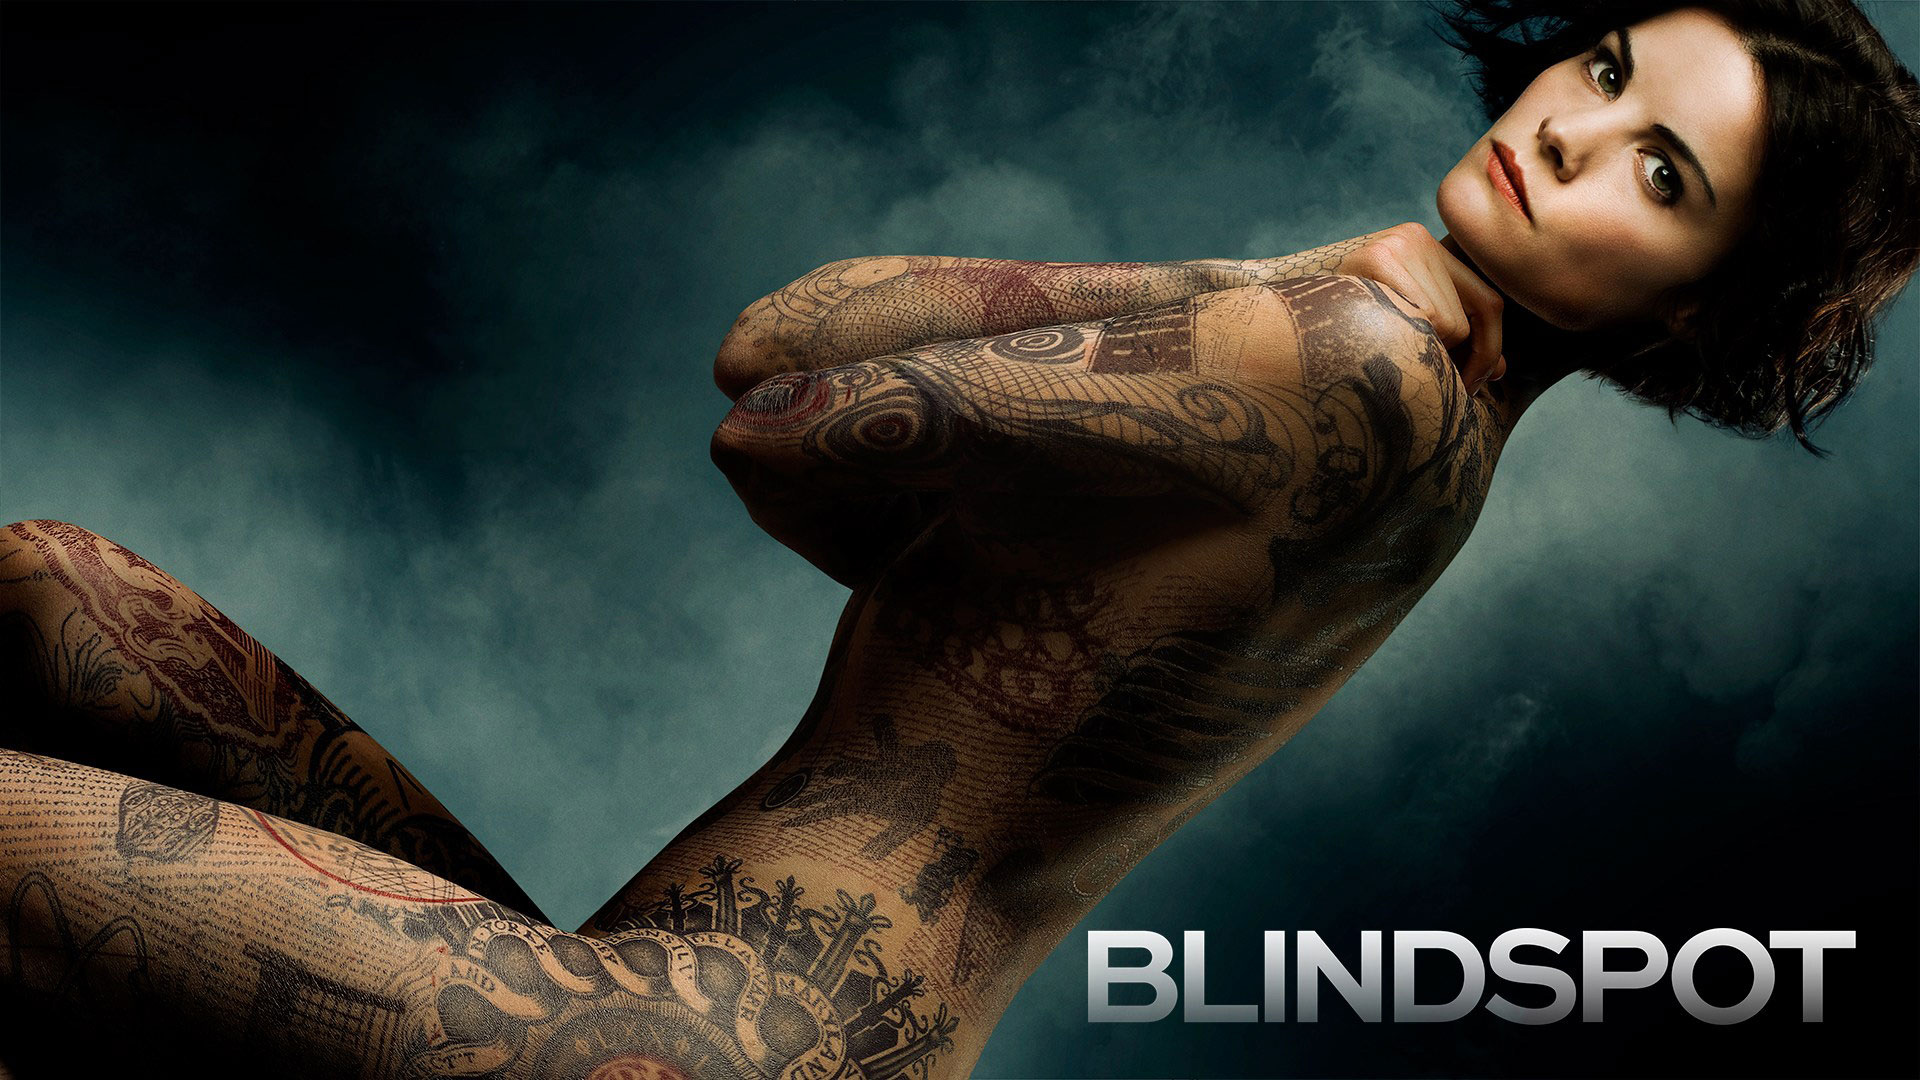 blindspot-top.jpg